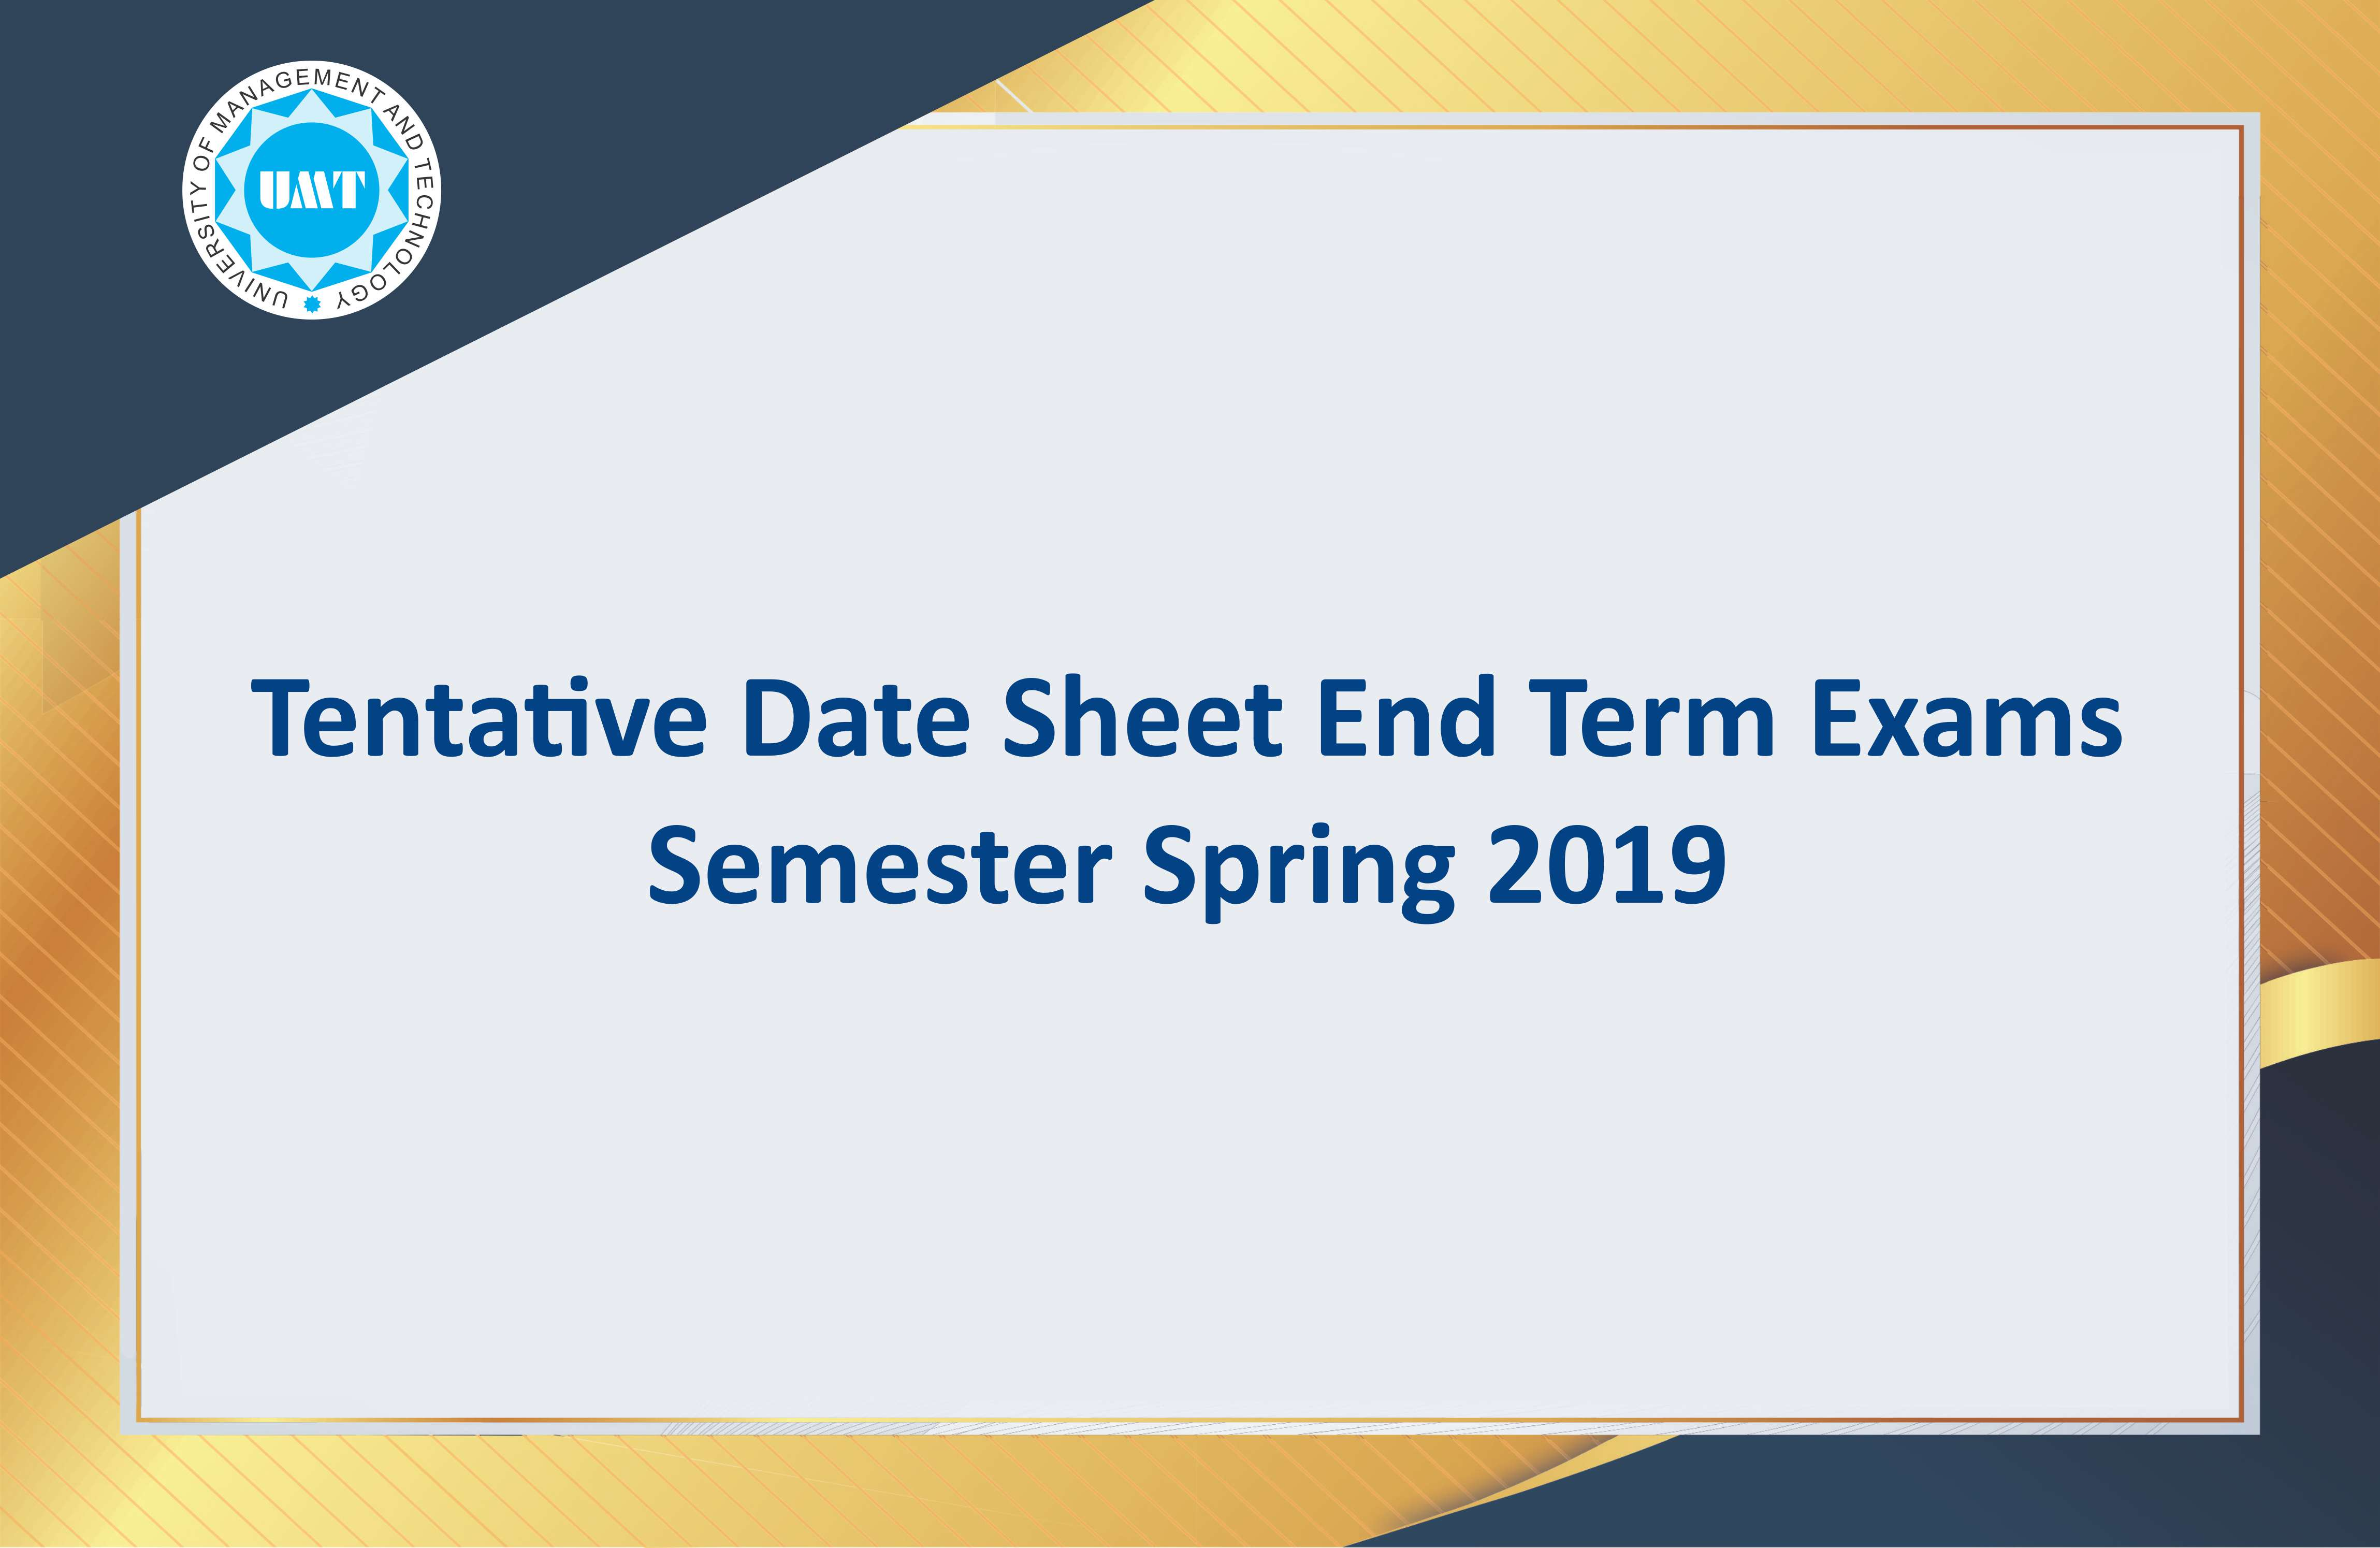 Tentative Date Sheet for End Term Exams - Semester Spring 2019 has been displayed